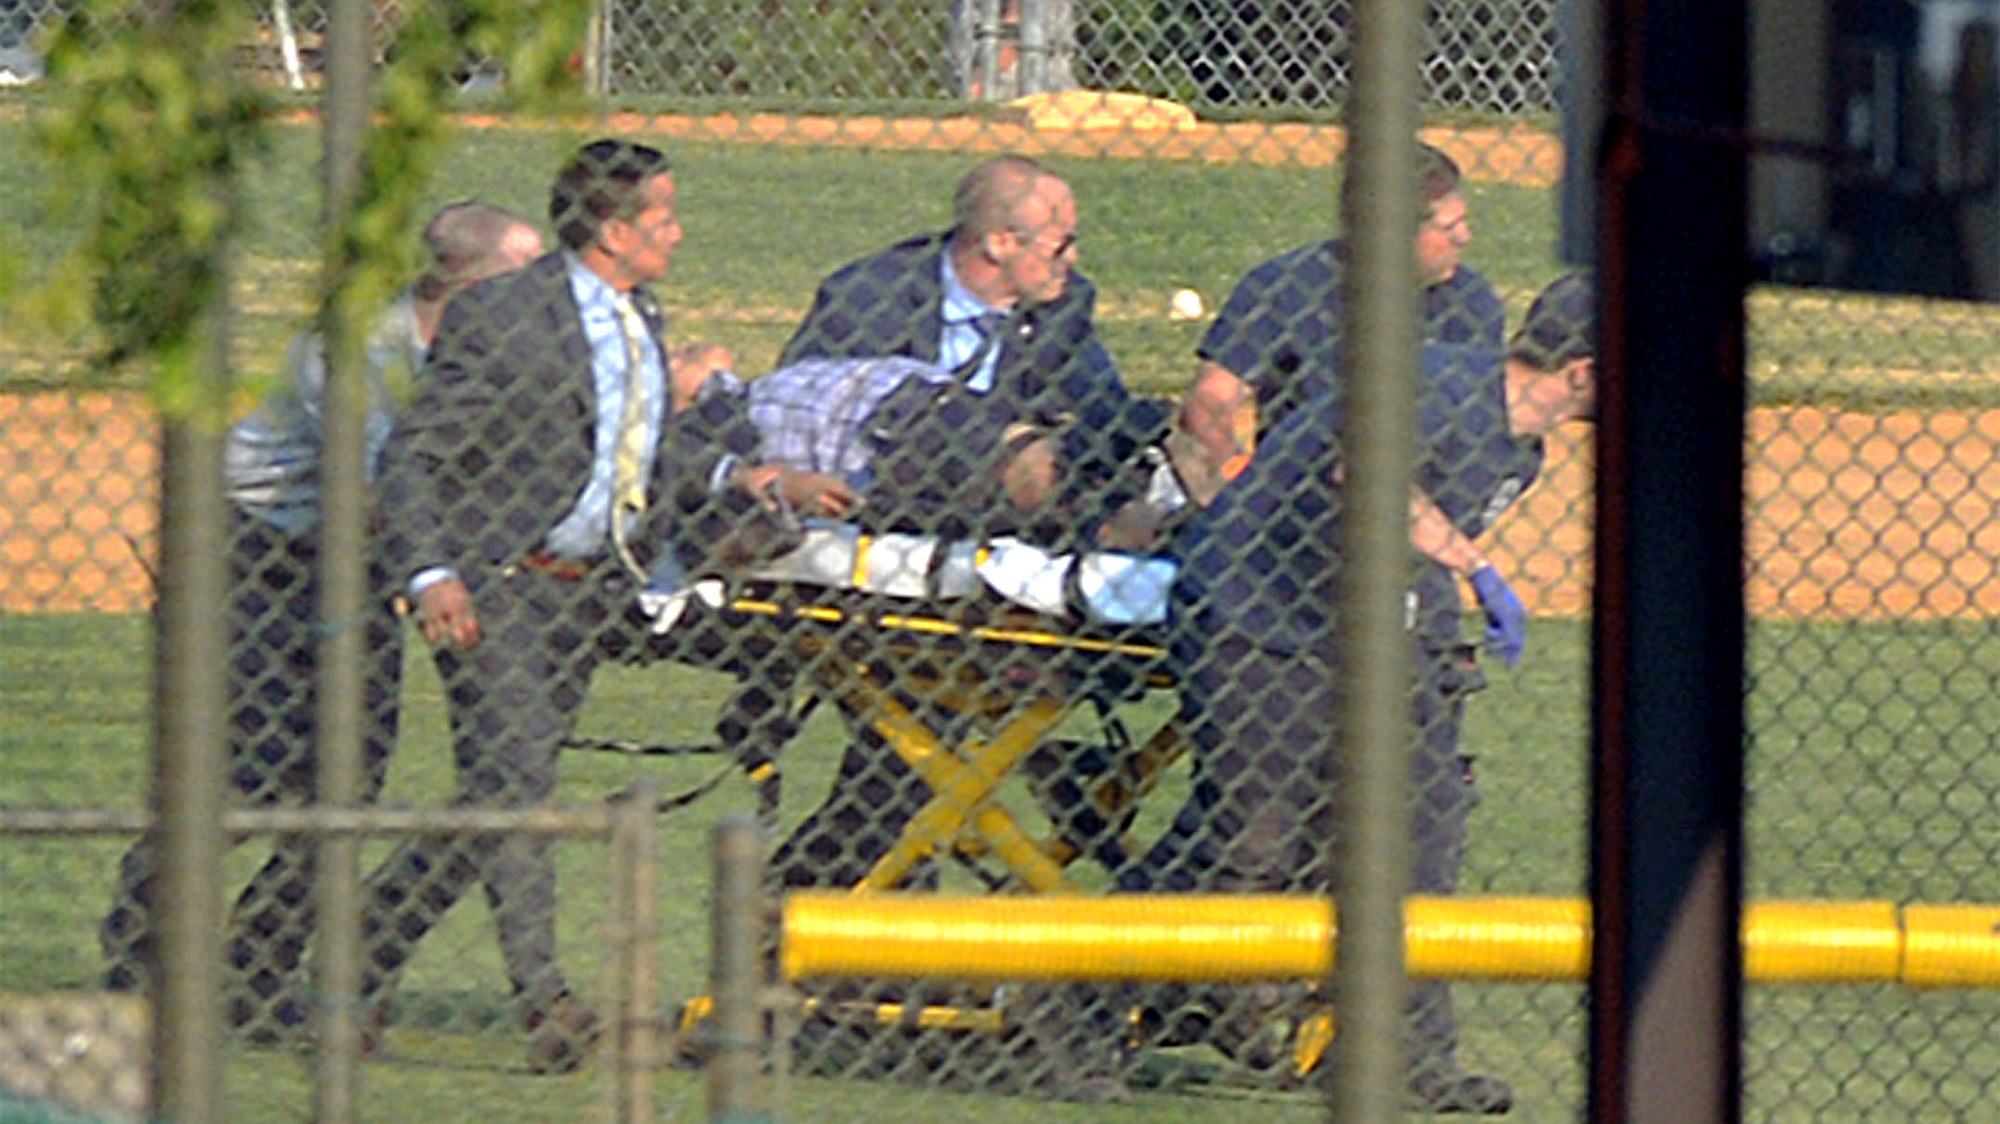 Gun used in Scalise shooting was legally purchased assault rifle